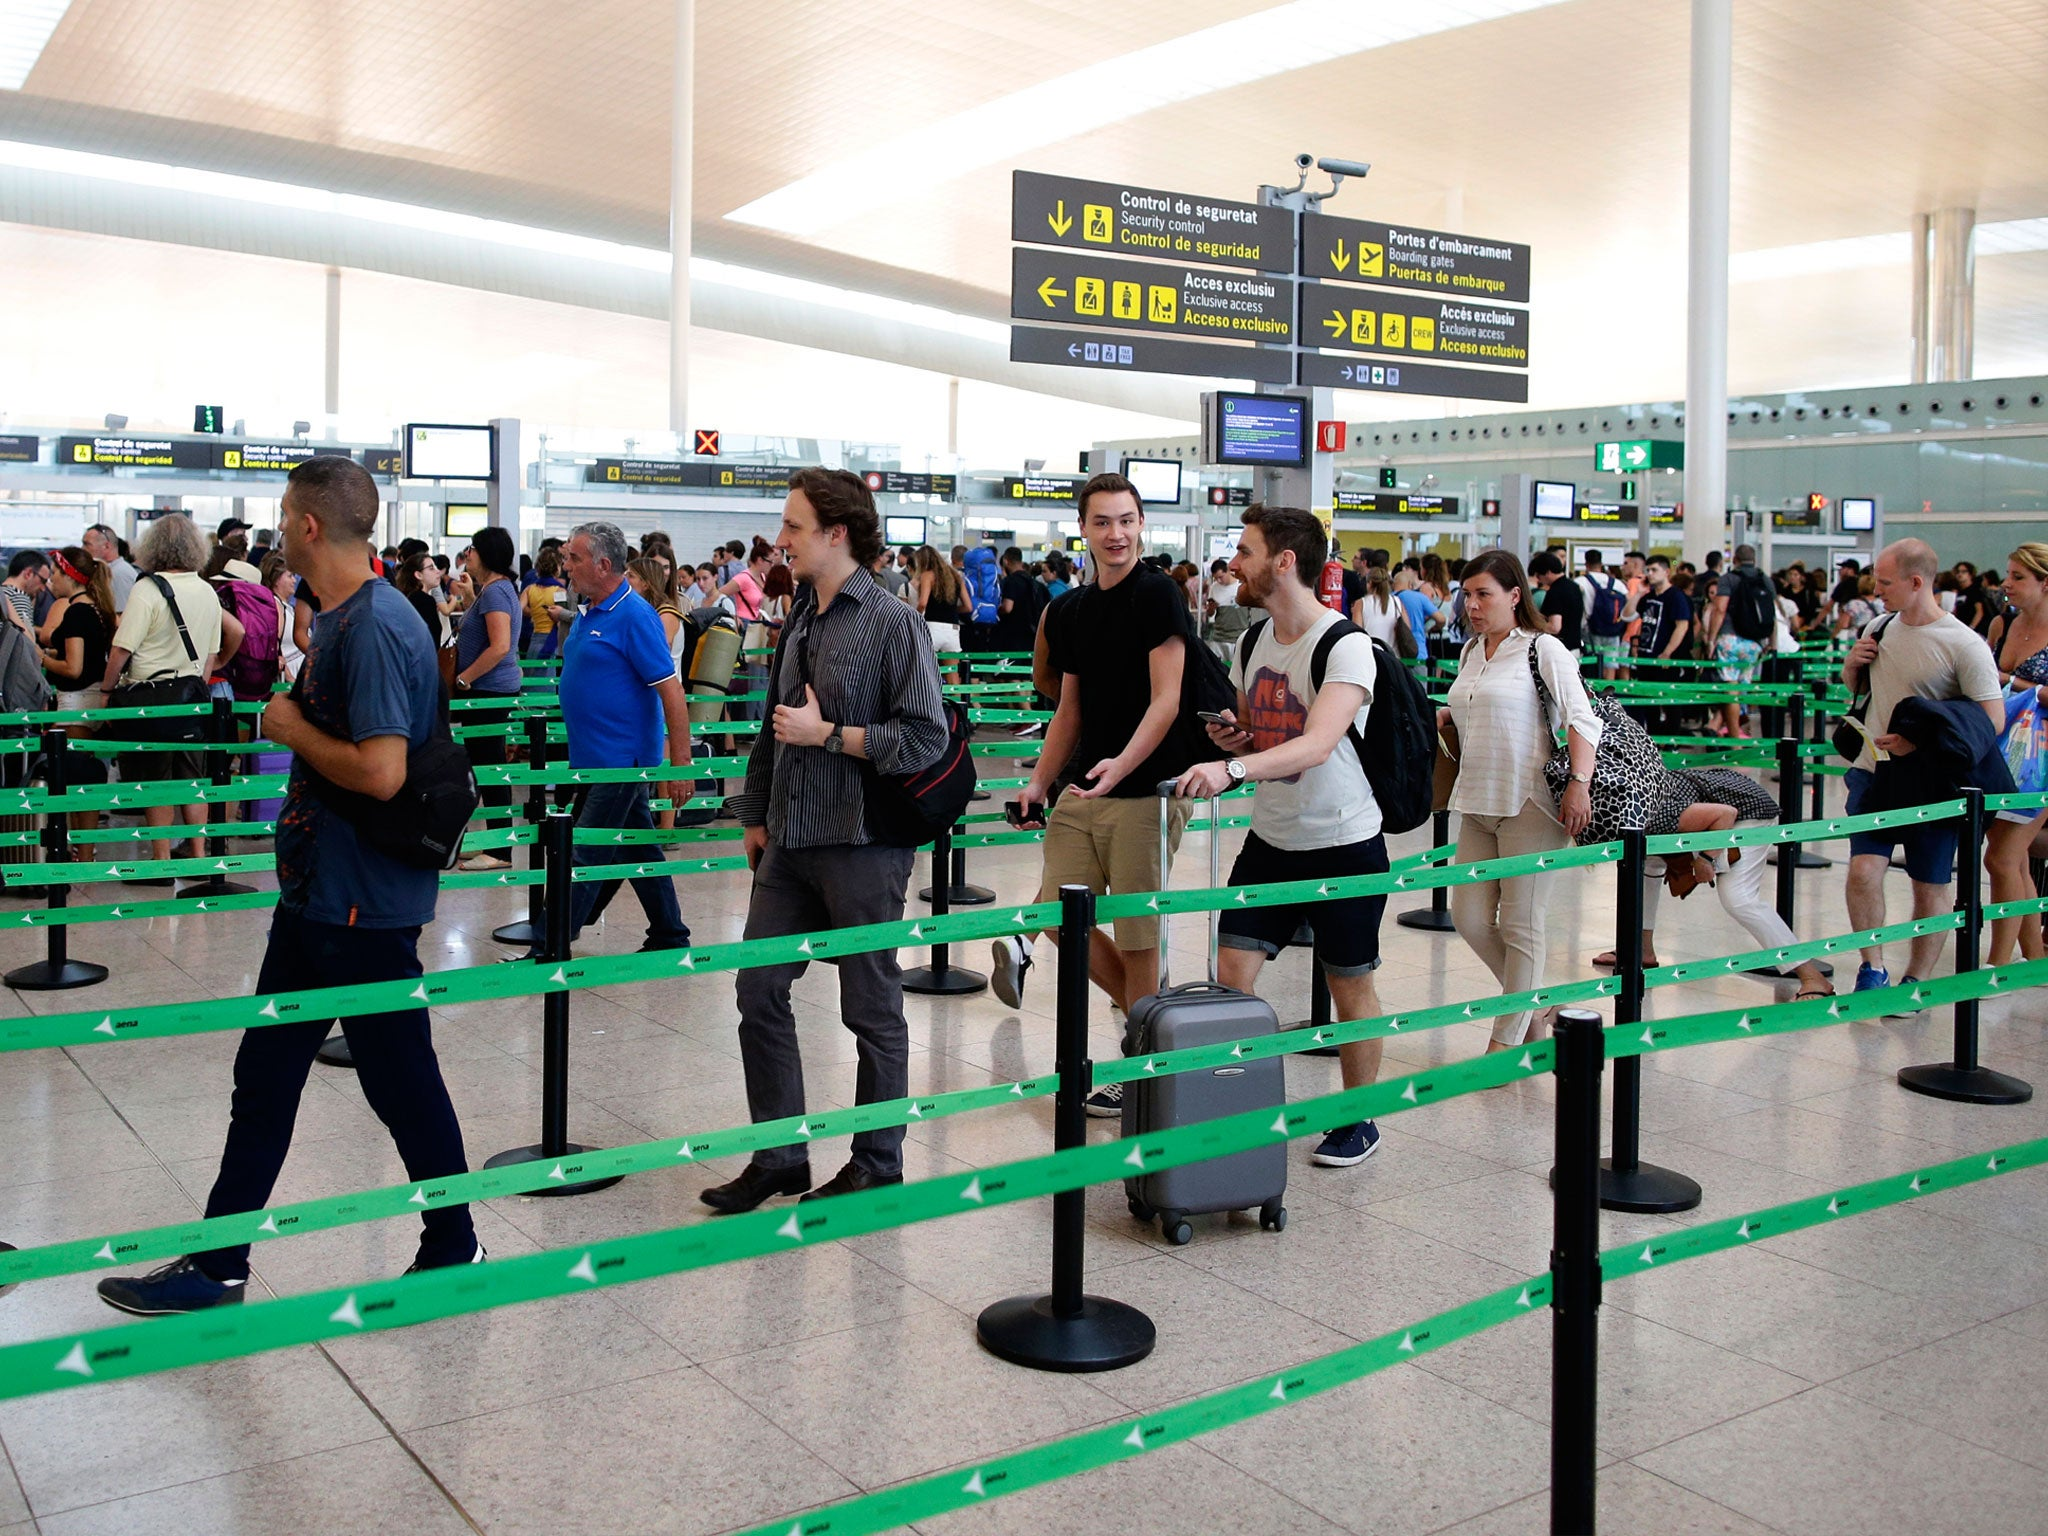 British travellers will be exempt from tough new EU frontier rules, says top Tory MP